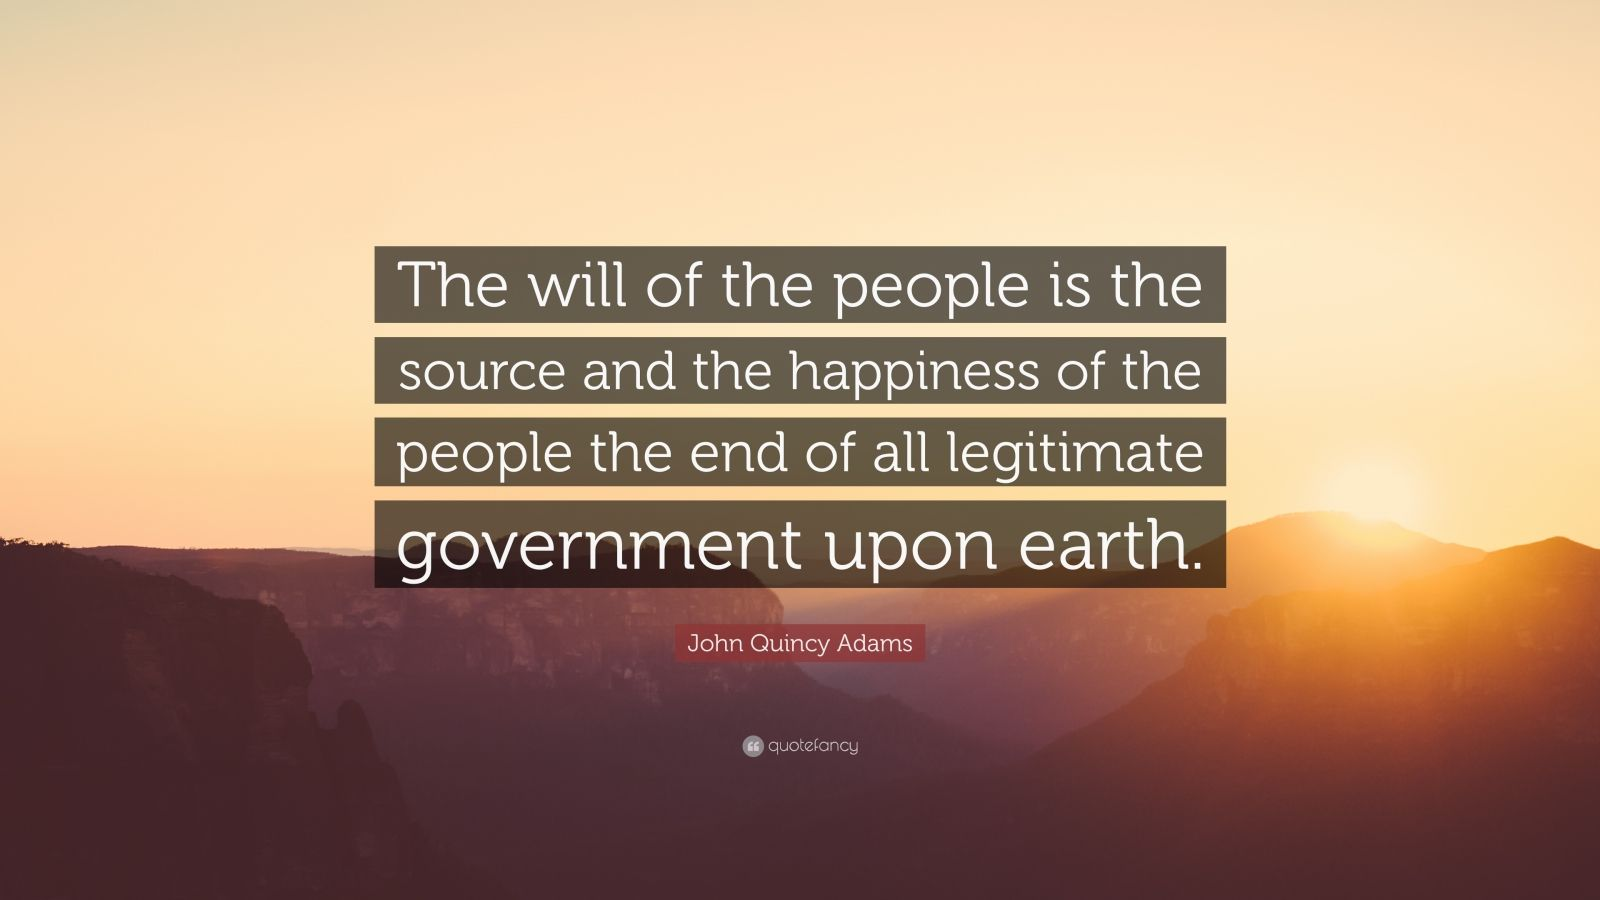 """John Quincy Adams Quote: """"The will of the people is the source and the happiness of the people the end of all legitimate government upon earth."""""""